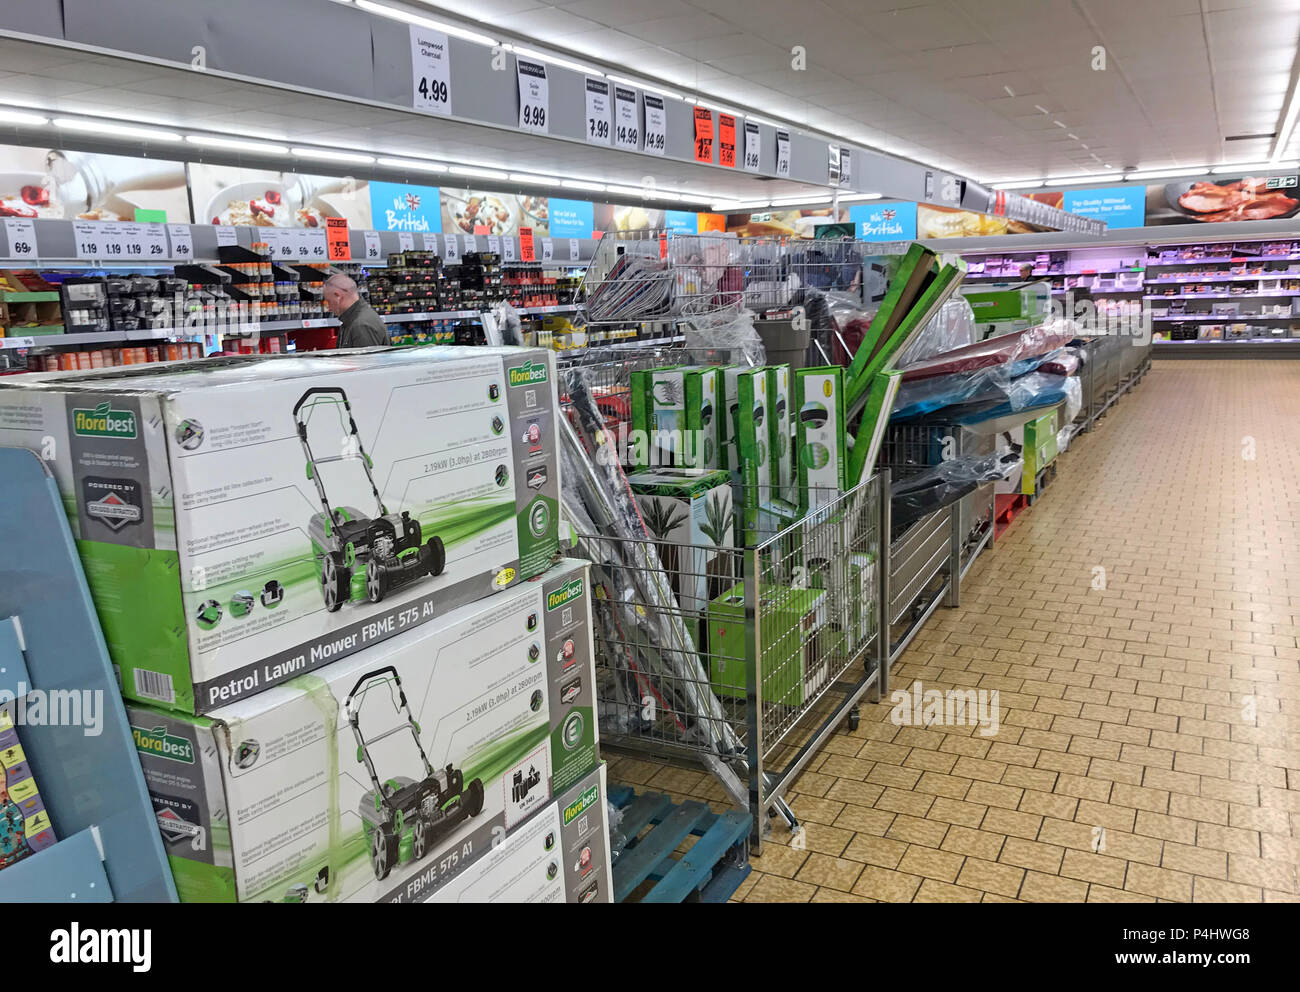 The Middle Aisle at Lidl, pop out for some spuds & come home with a lawnmower and some fishing waders, Latchford, Warrington, Cheshire, England - Stock Image